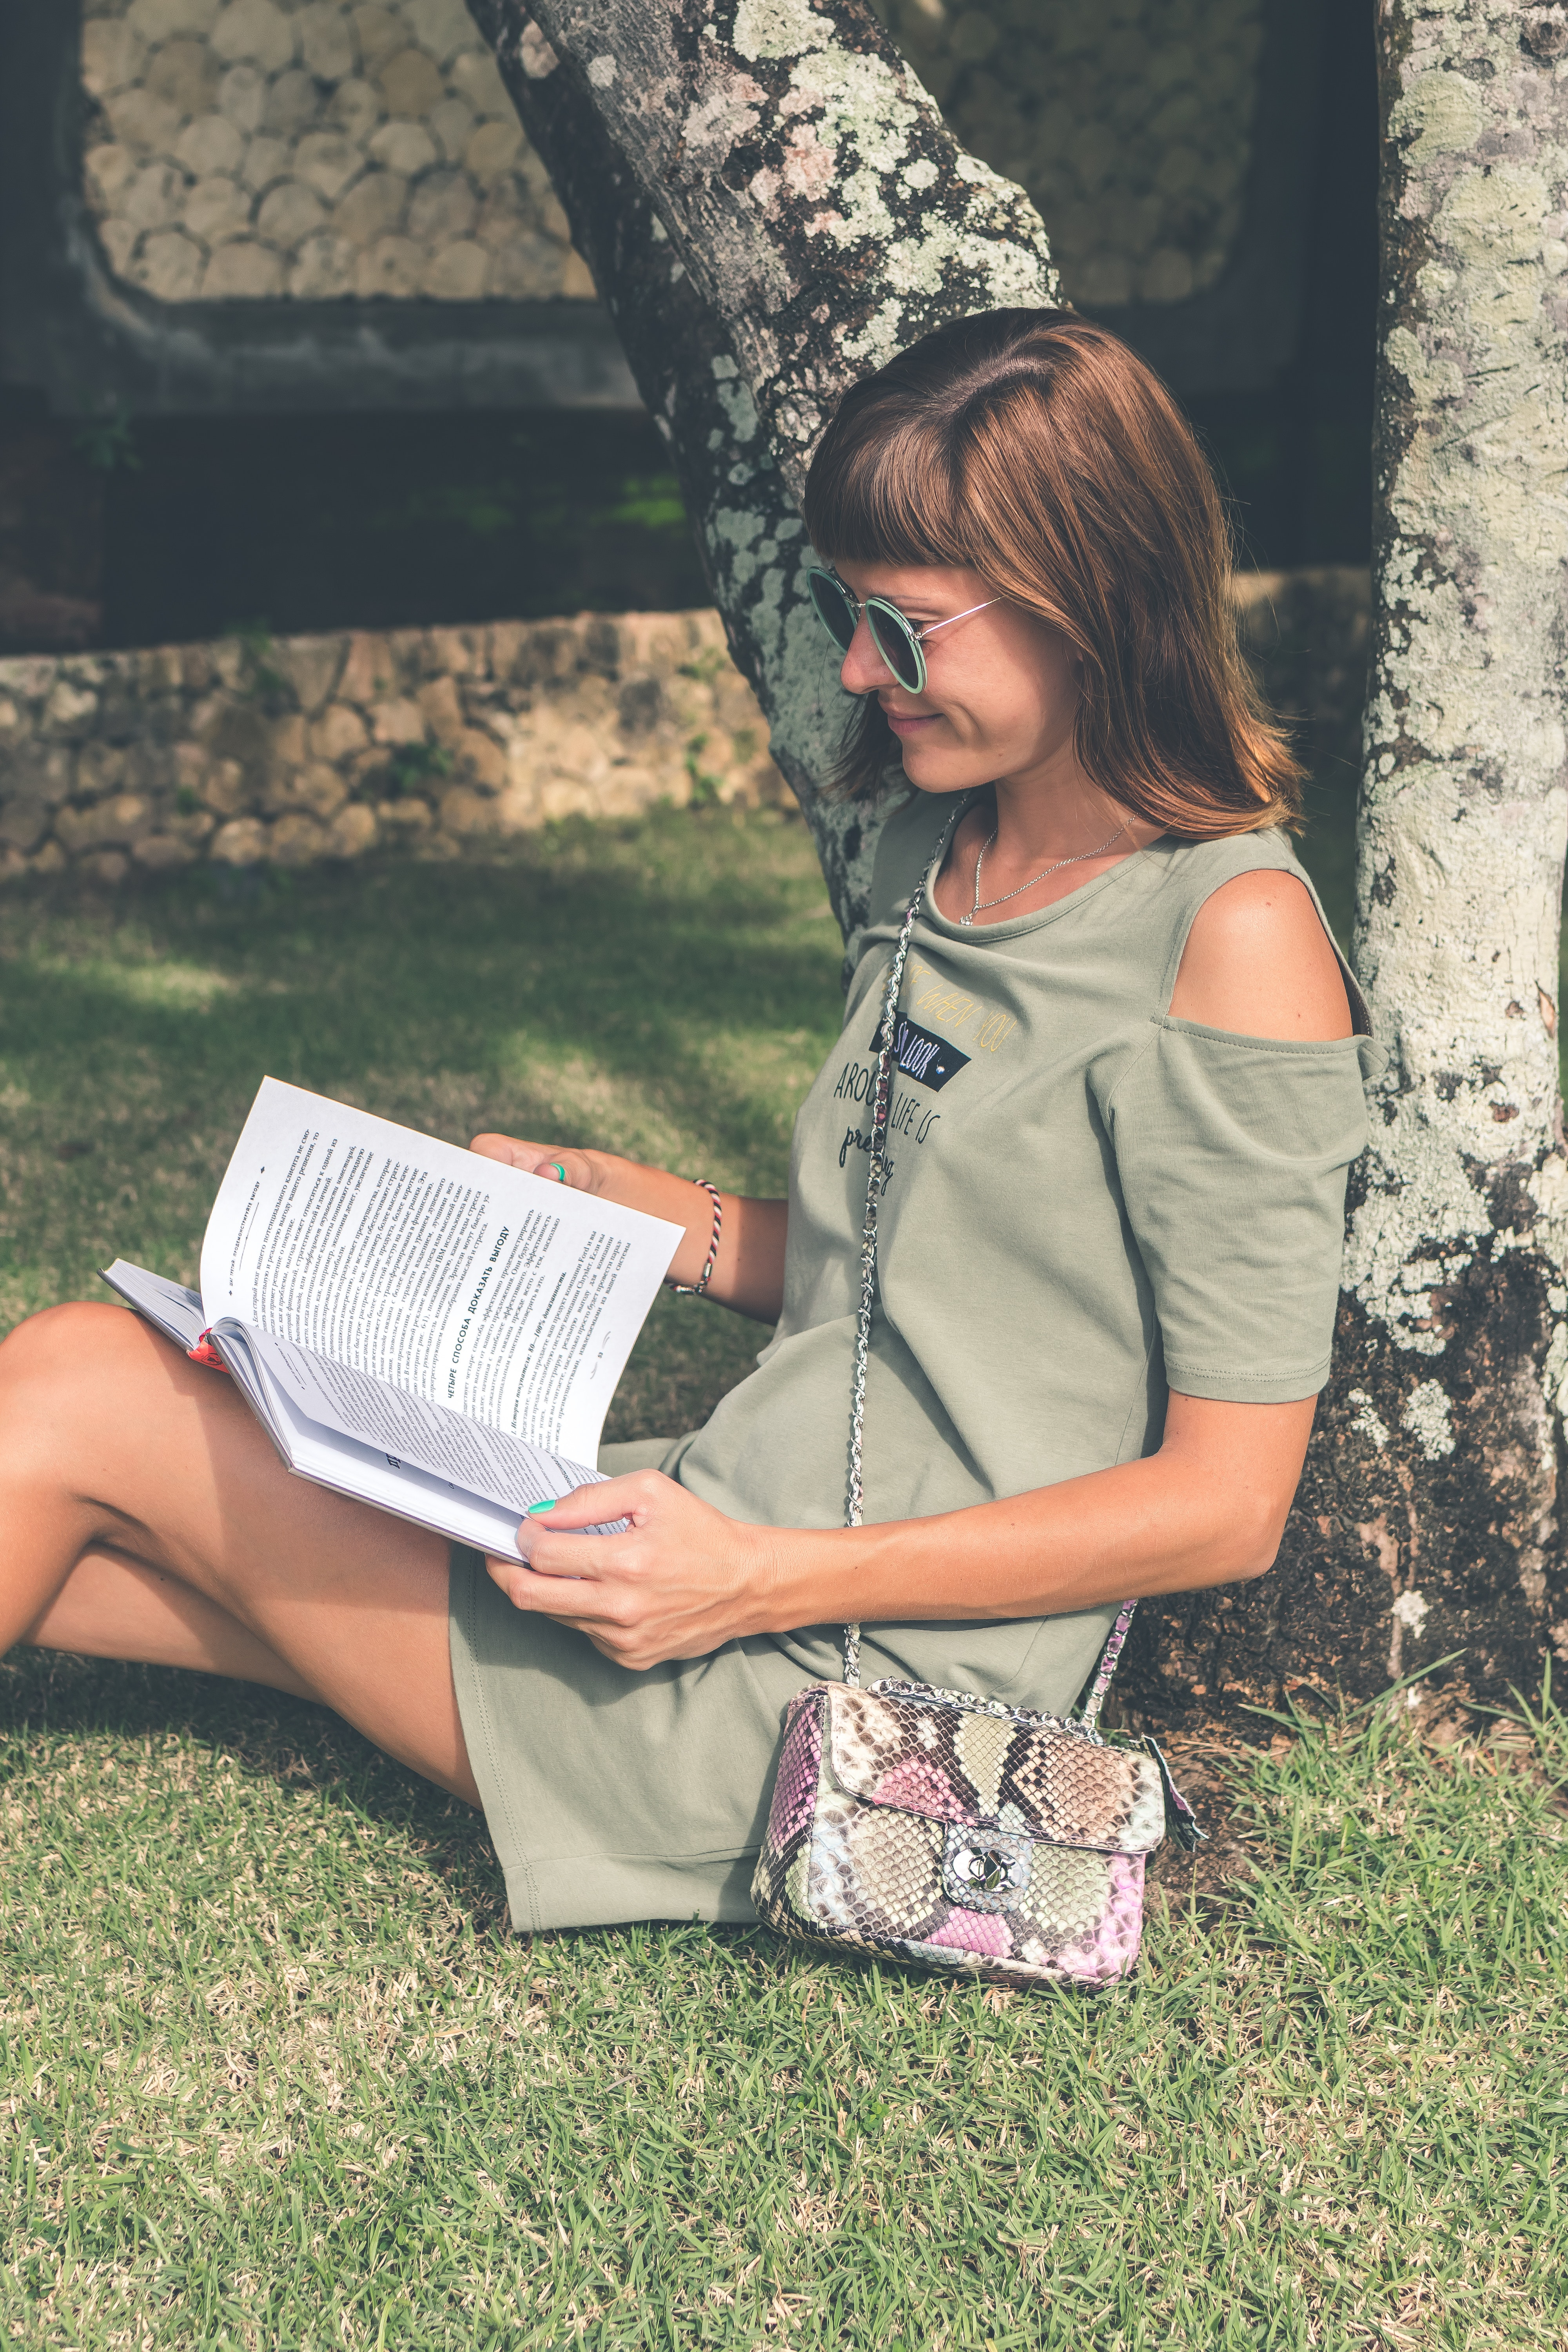 Woman in Gray Dress Reading Book at Daytime, Attractive, Park, Woman, White, HQ Photo